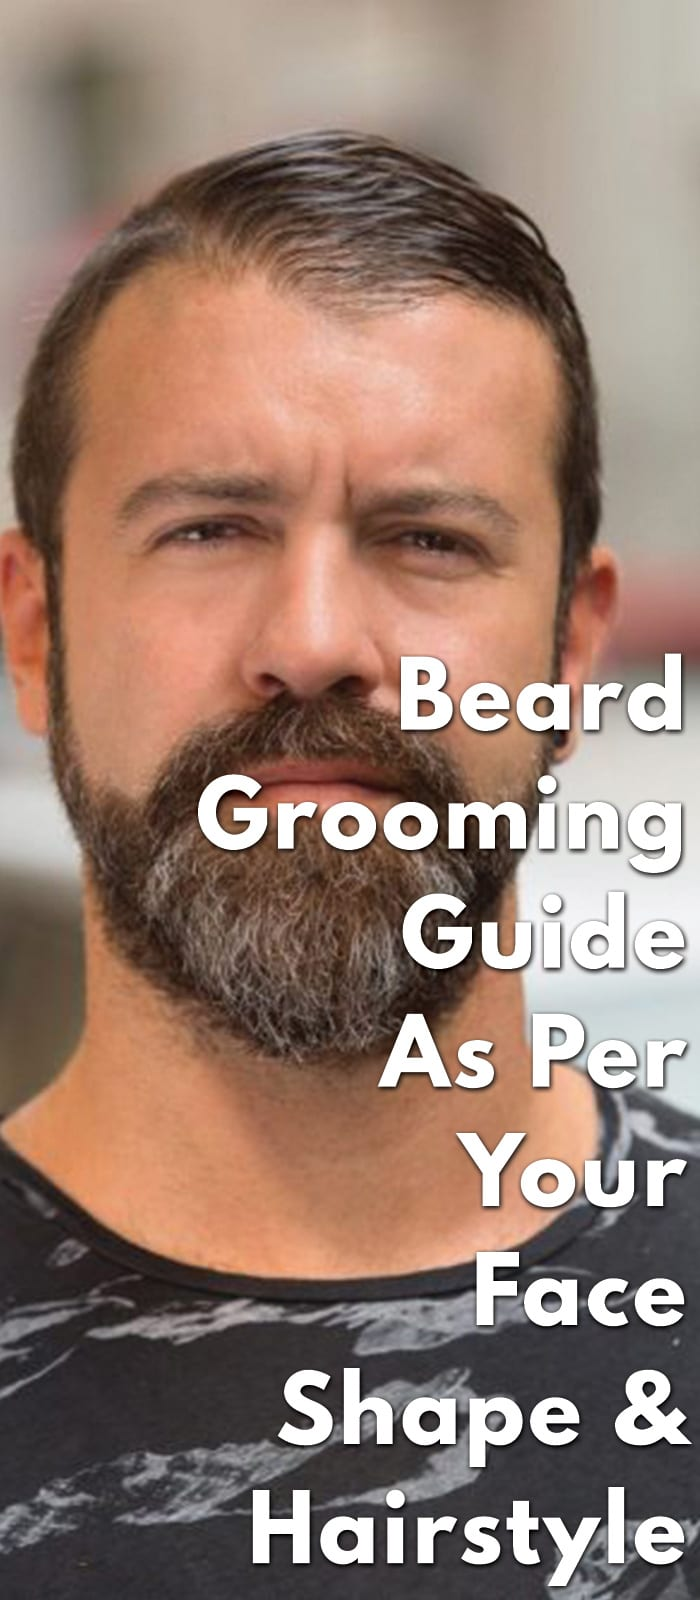 Beard-Grooming-Guide-As-Per-Your-Face-Shape-&-Hairstyle